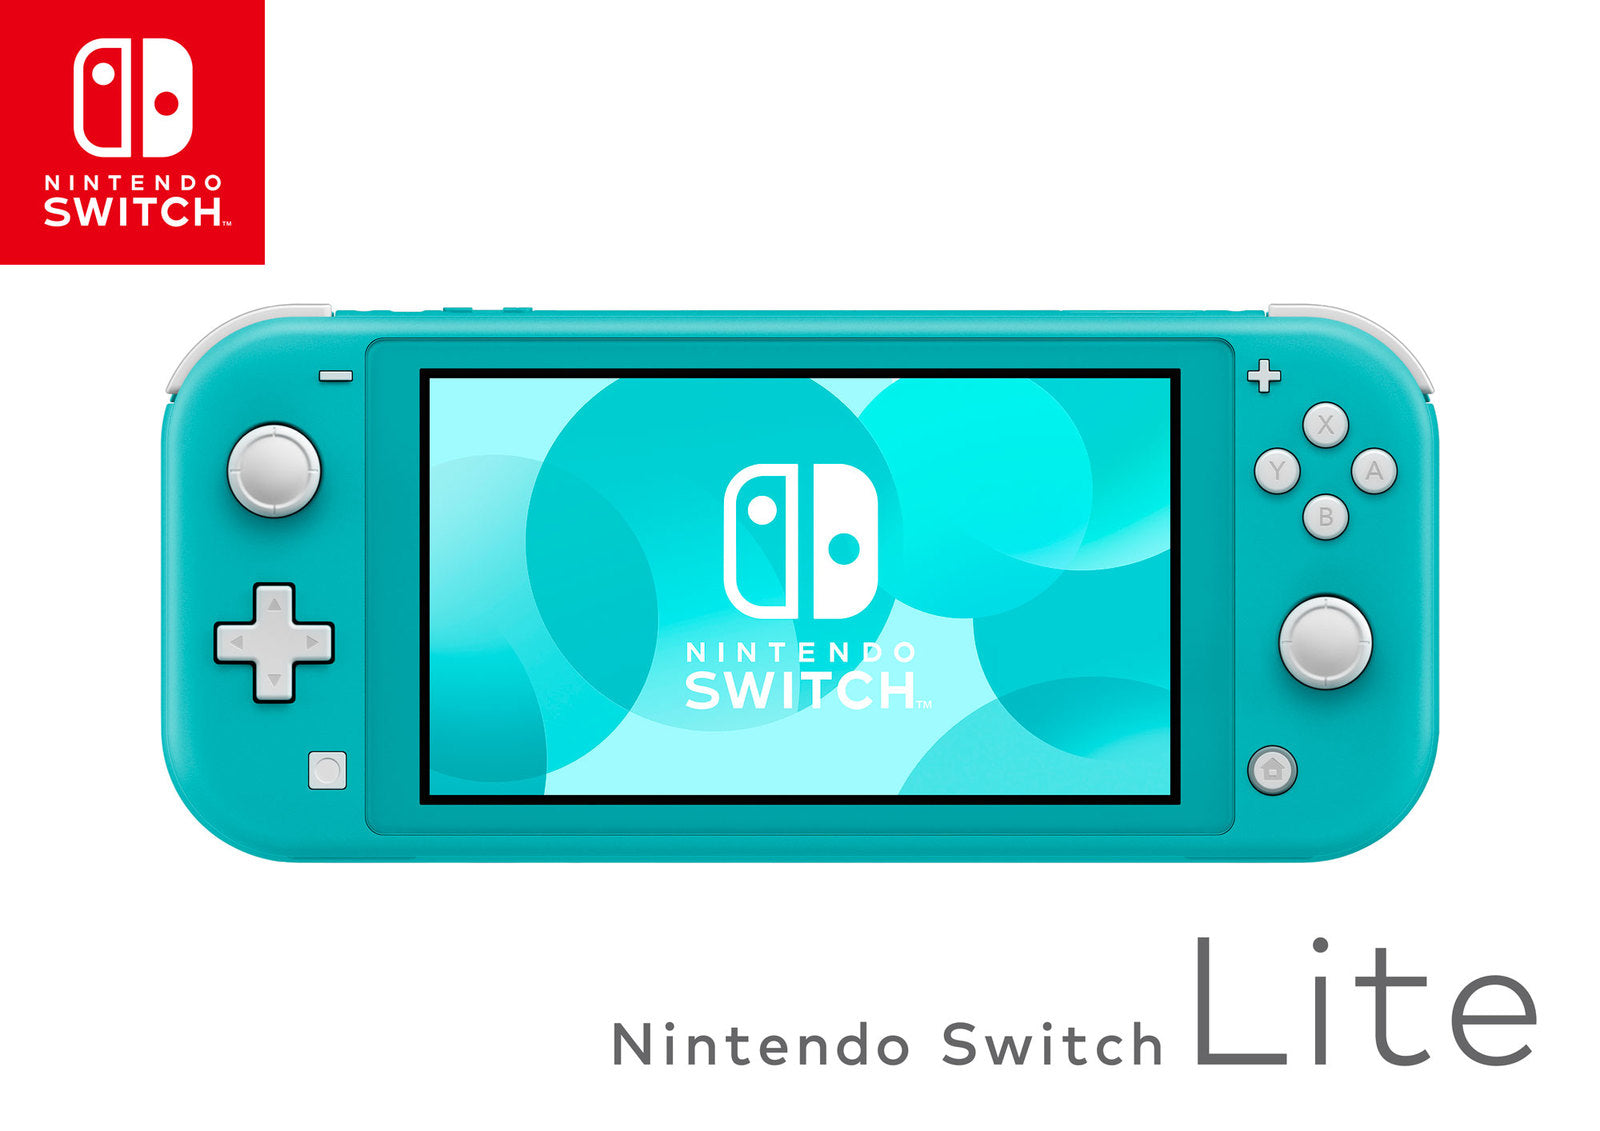 Nintendo Switch Lite - Turquoise - Nintendo Switch